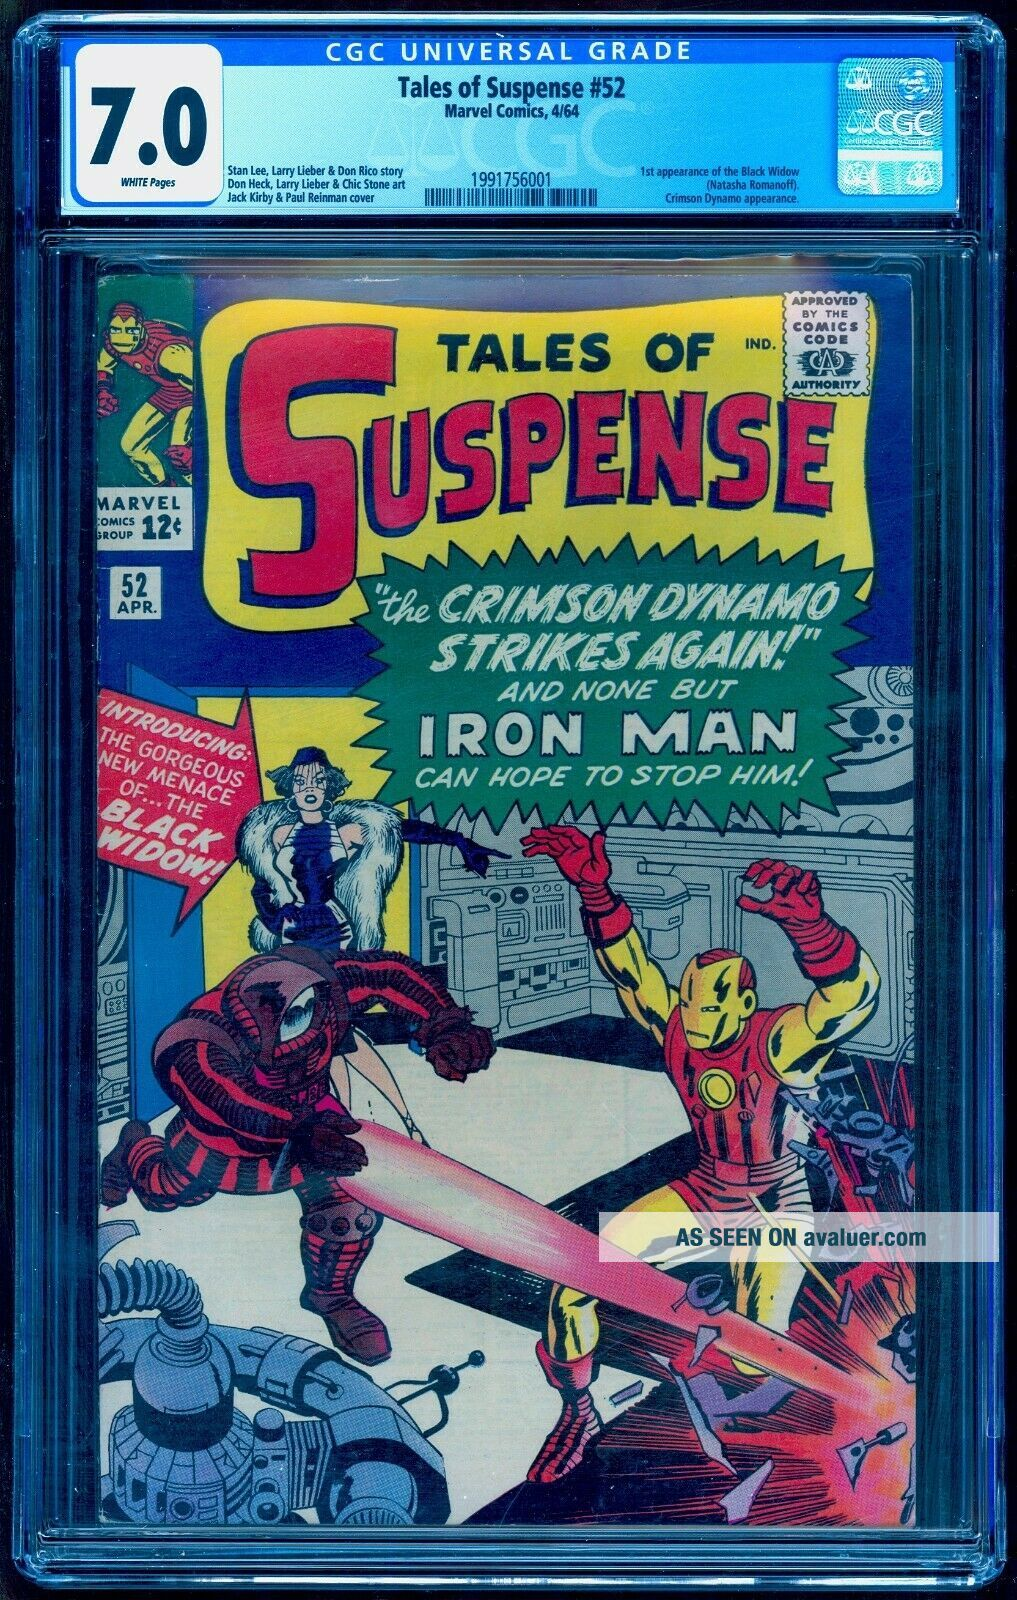 TALES OF SUSPENSE 52 CGC 7.  0 WHITE BRIGHT COLORS NO MARKS / STAMPS UNDERGRADED